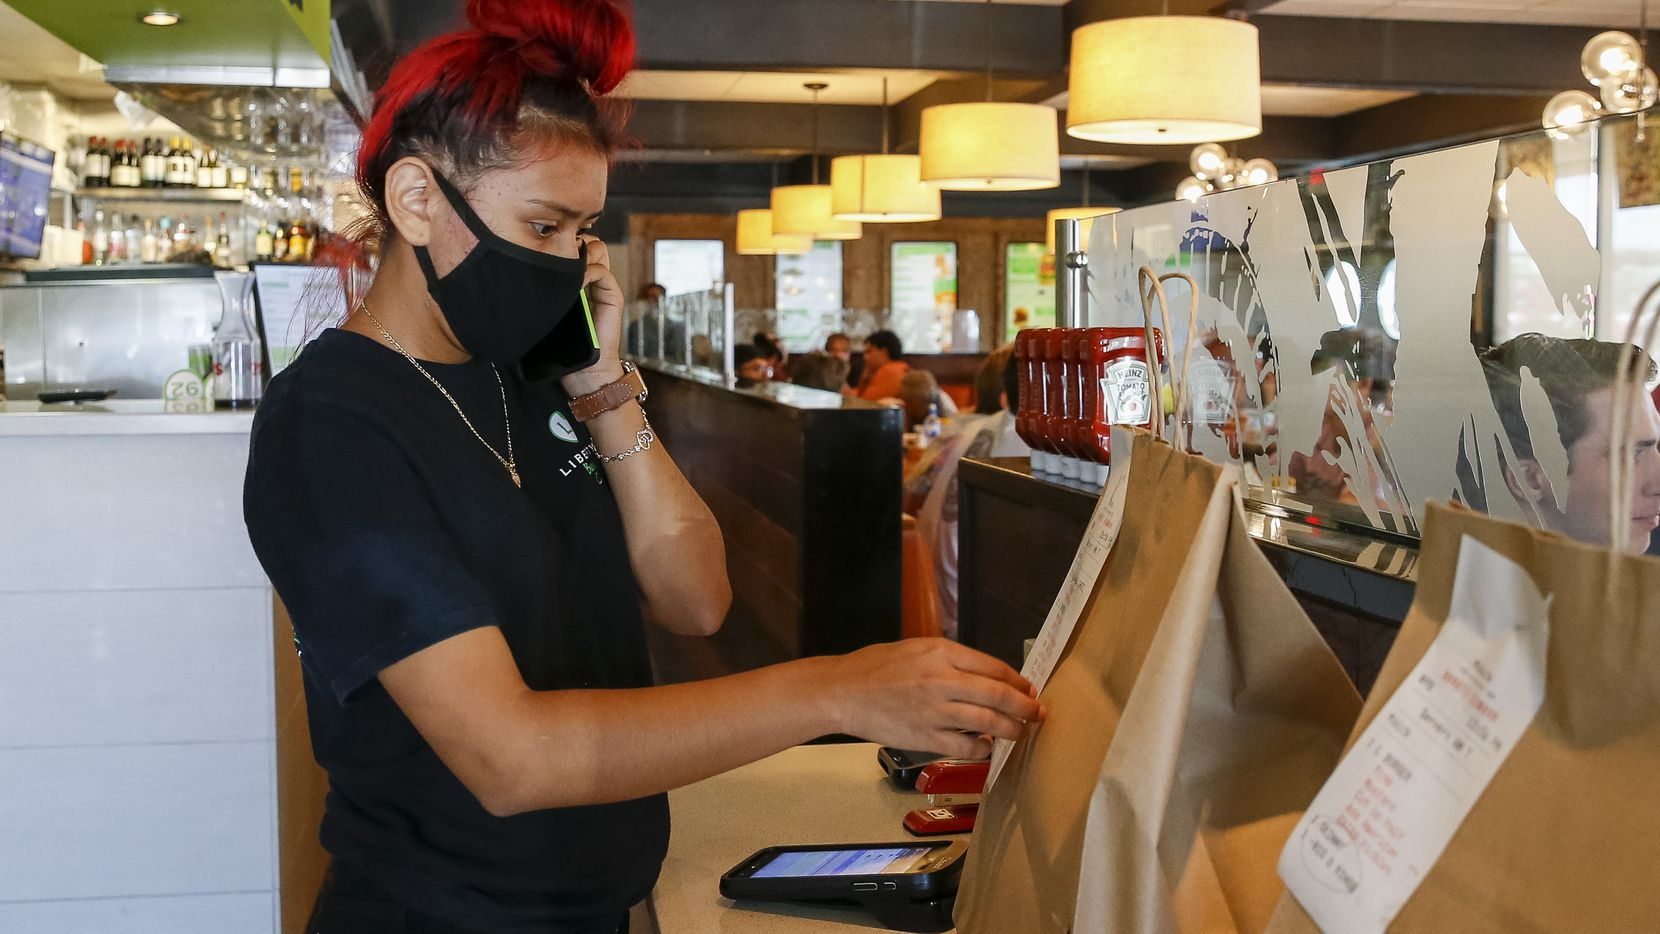 Liberty Burger employee Nicole Romero checks a to-go order while answering the phone at Liberty Burger in Dallas.